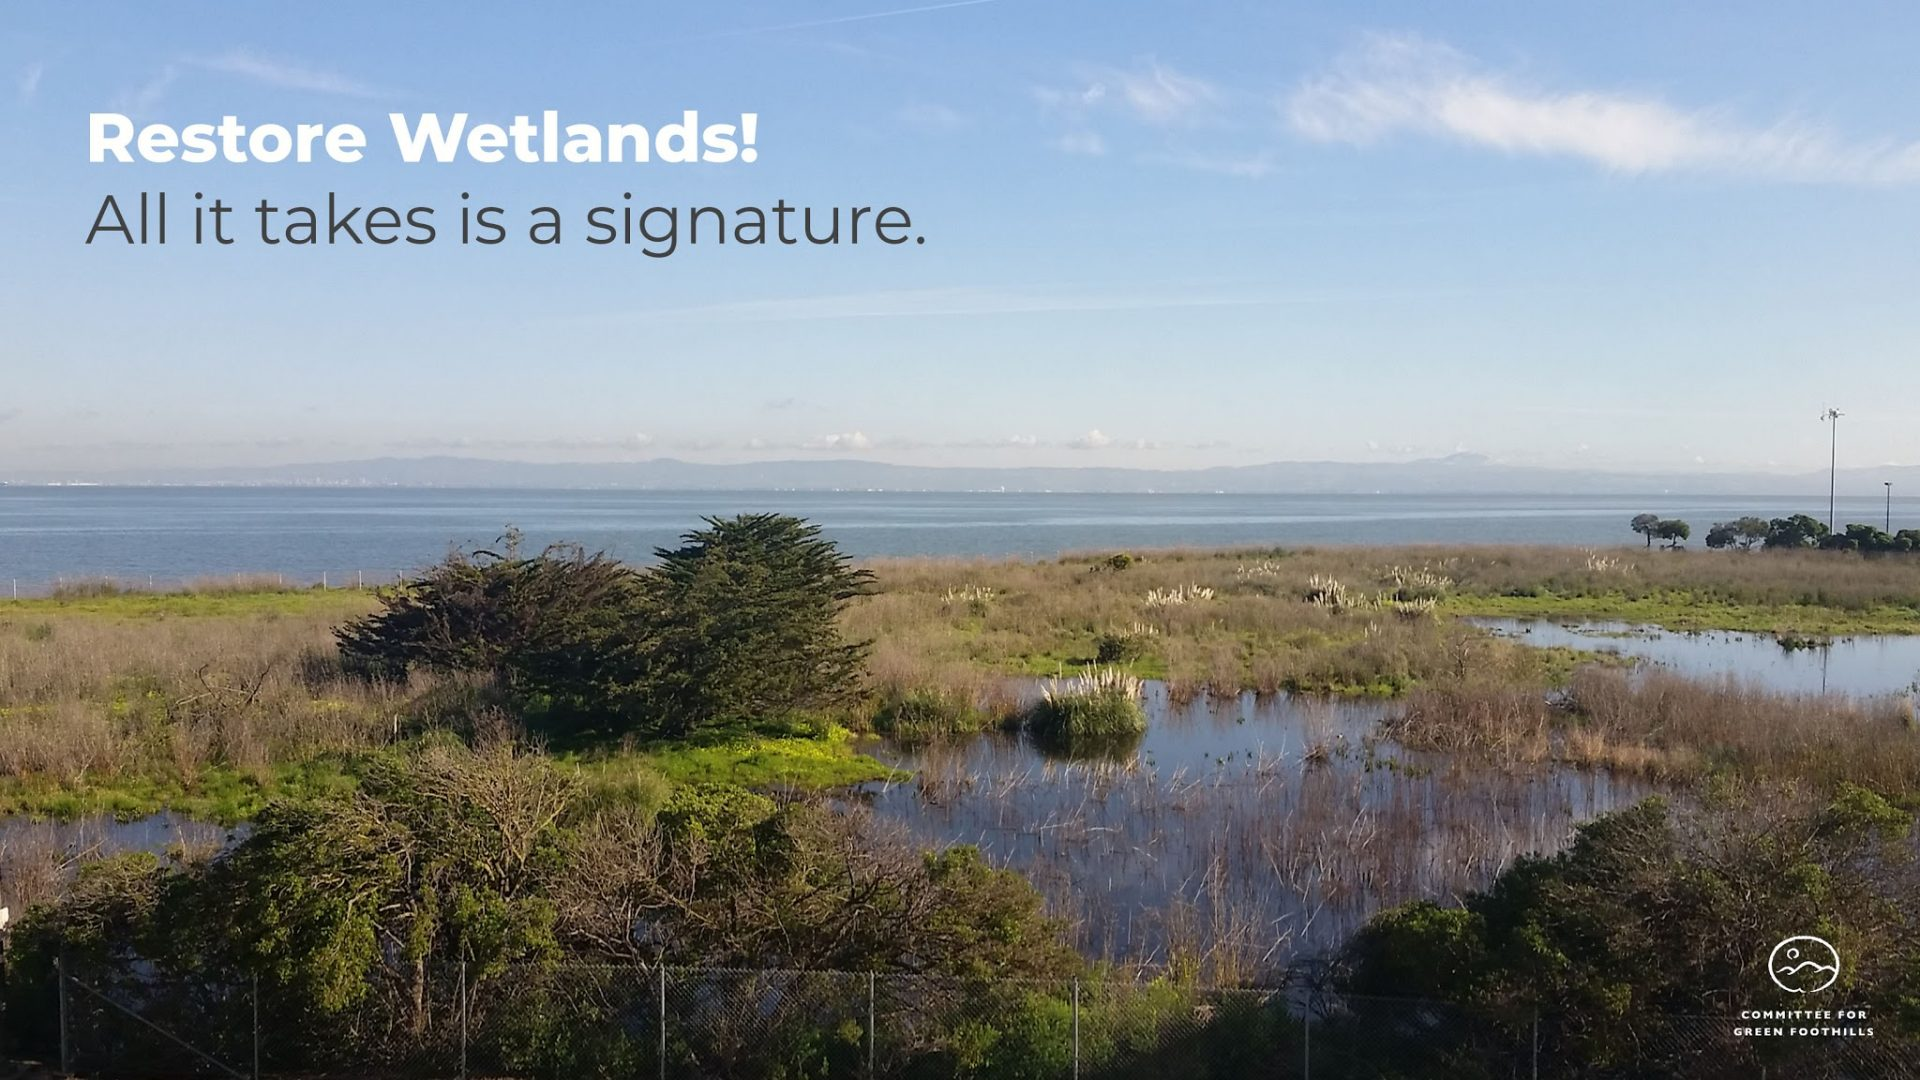 Speak Up for Wetlands & Access along the Bay